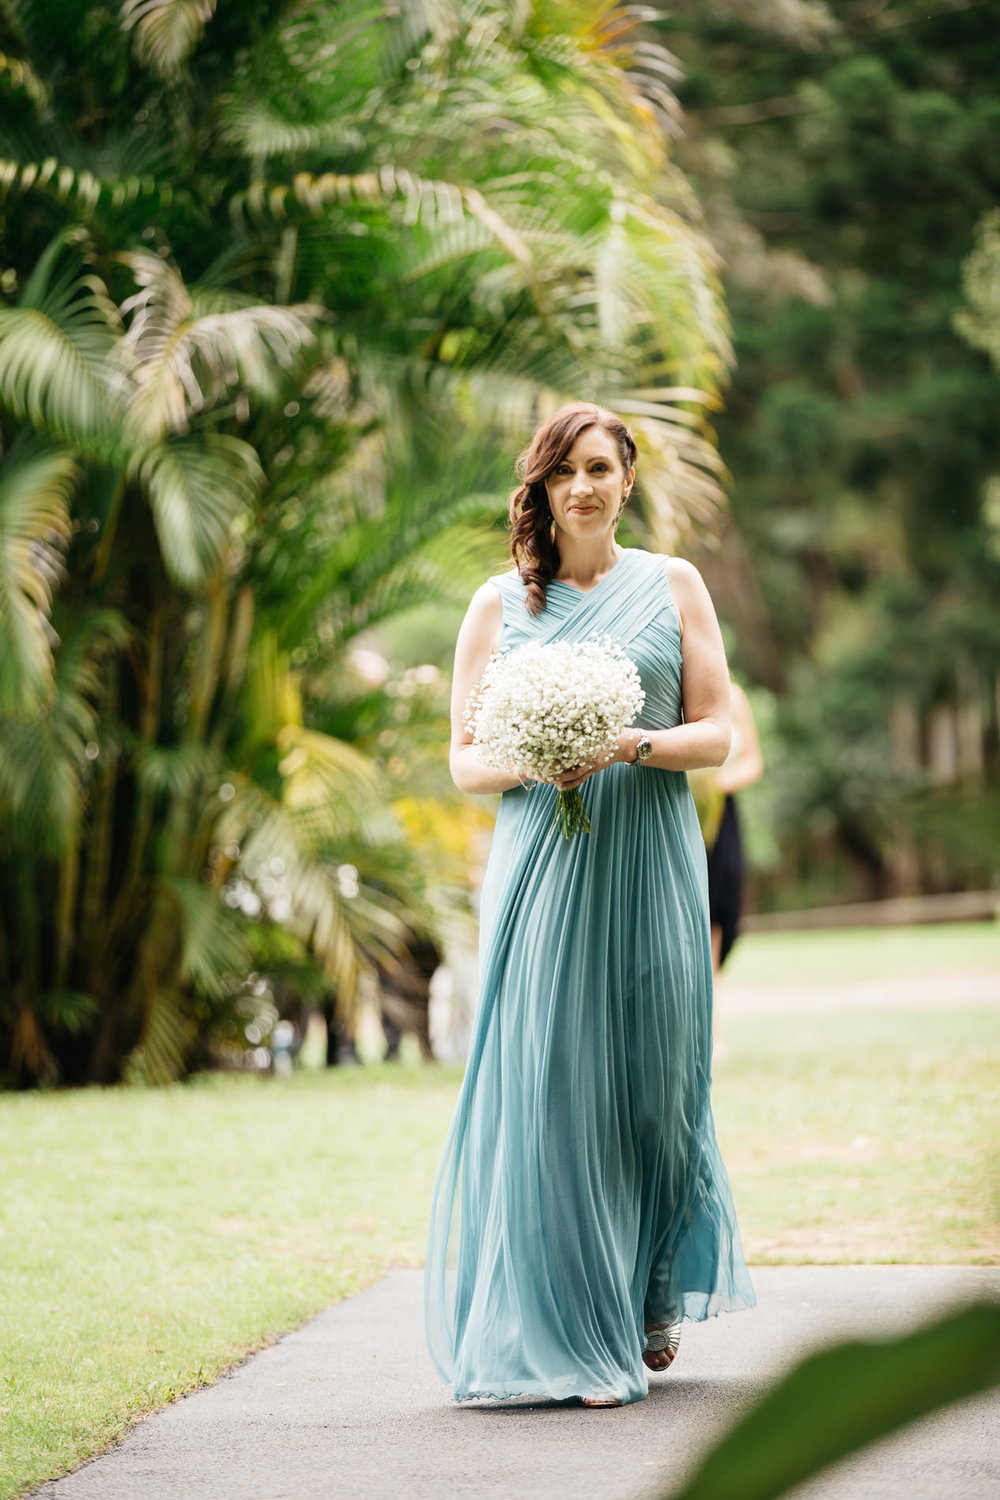 True North Photography_Boomerang Farm_Stacey and Isaac_Gold Coast Wedding_Barm Wedding_Hinterland Wedding-70.jpg